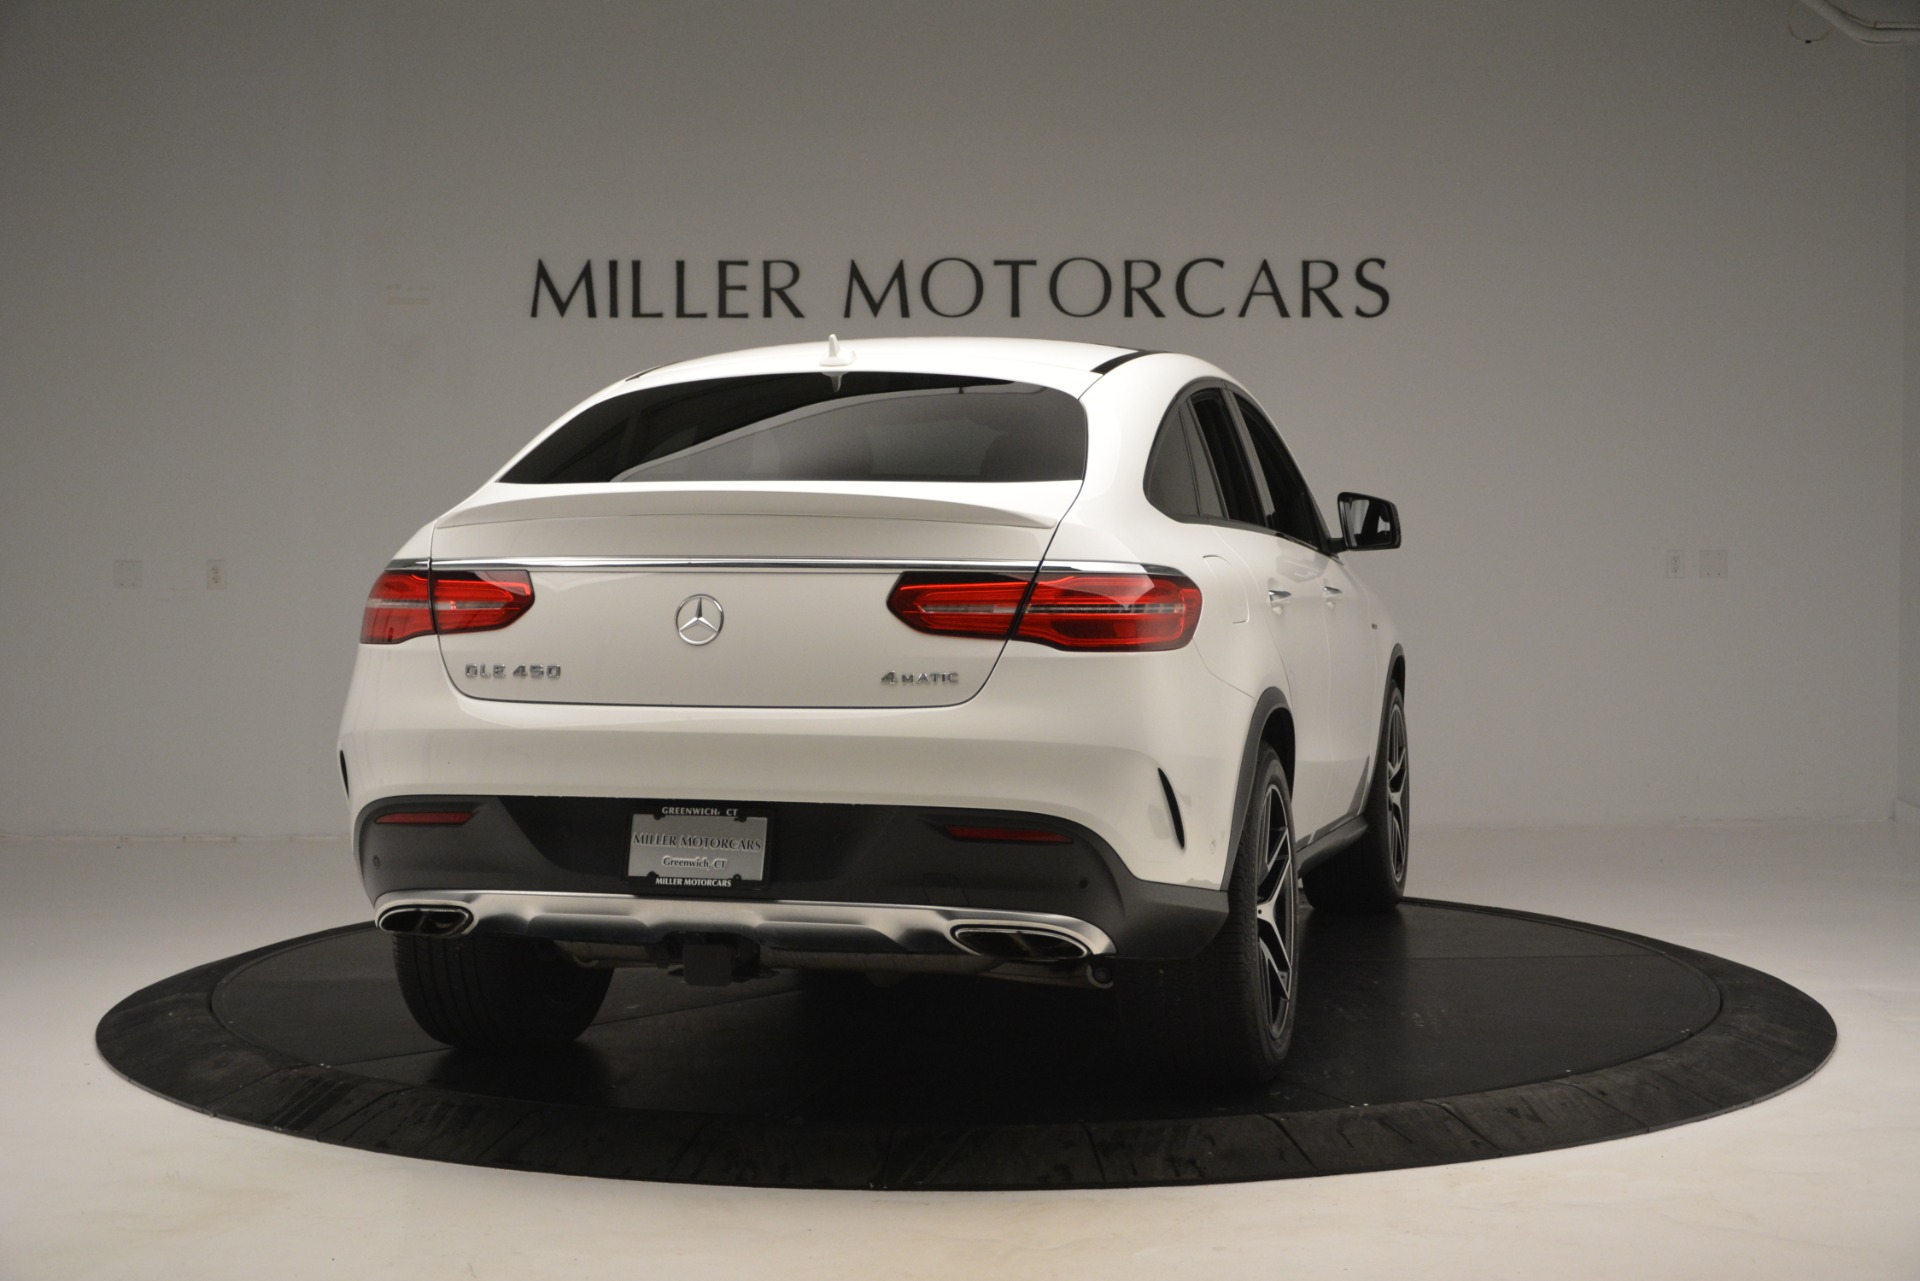 Used 2016 Mercedes-Benz GLE 450 AMG Coupe 4MATIC For Sale In Greenwich, CT 2787_p7